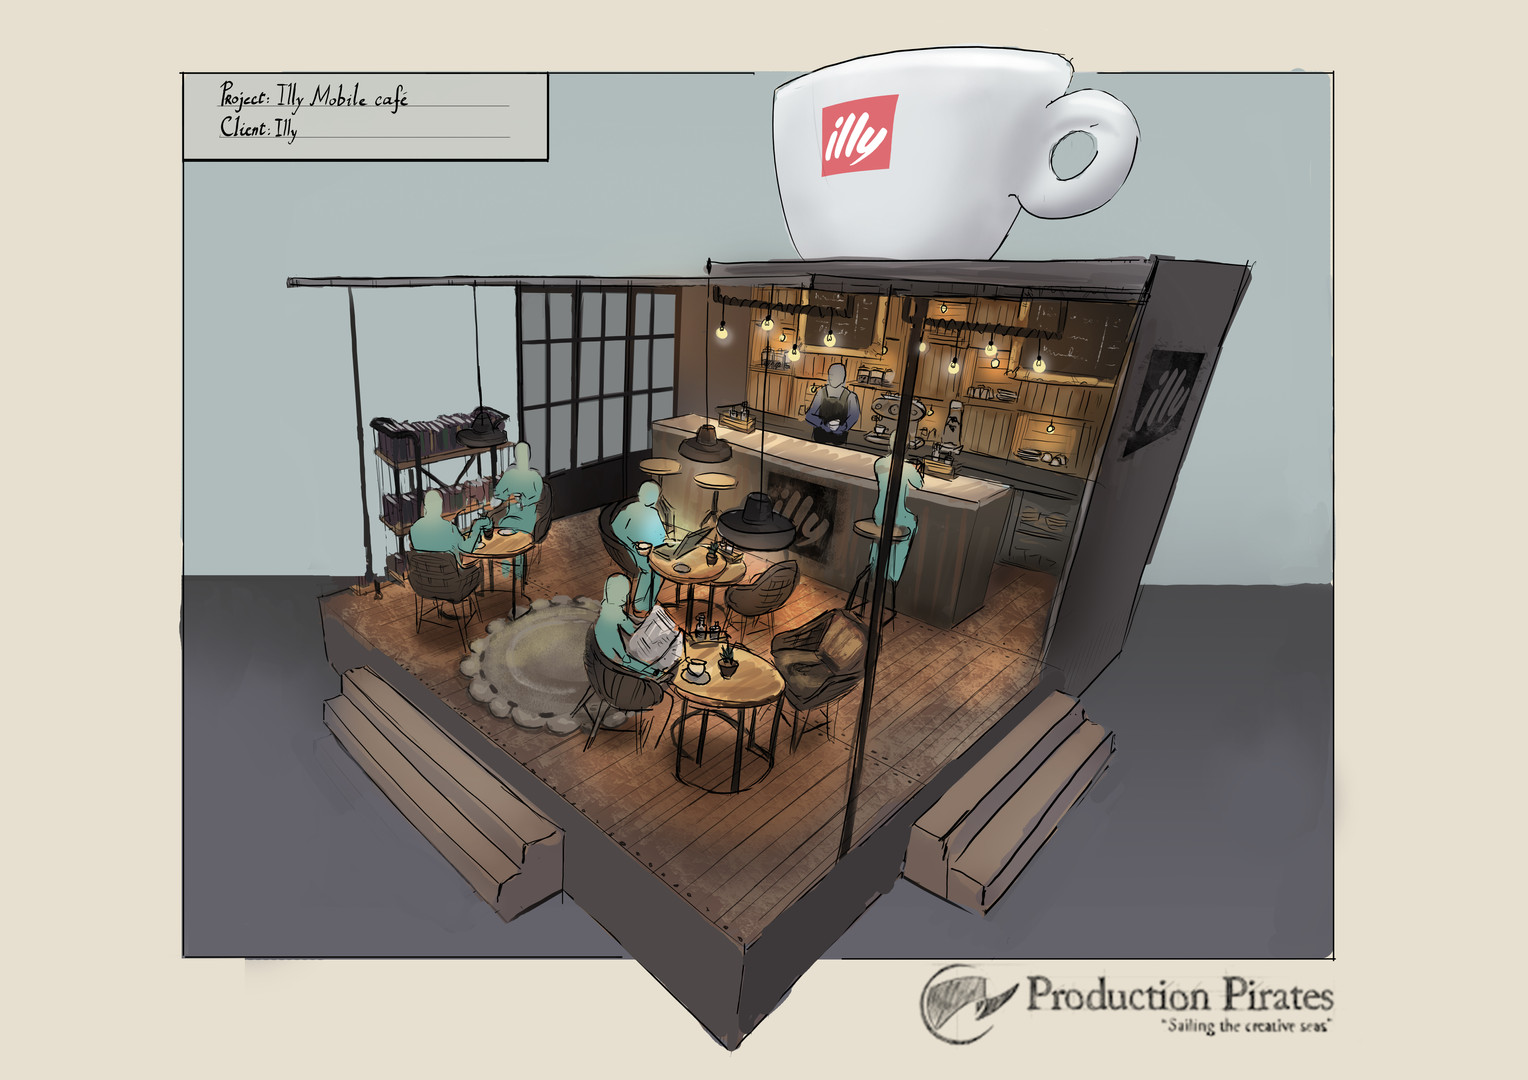 pp - illy mobile café illy concept.jpg